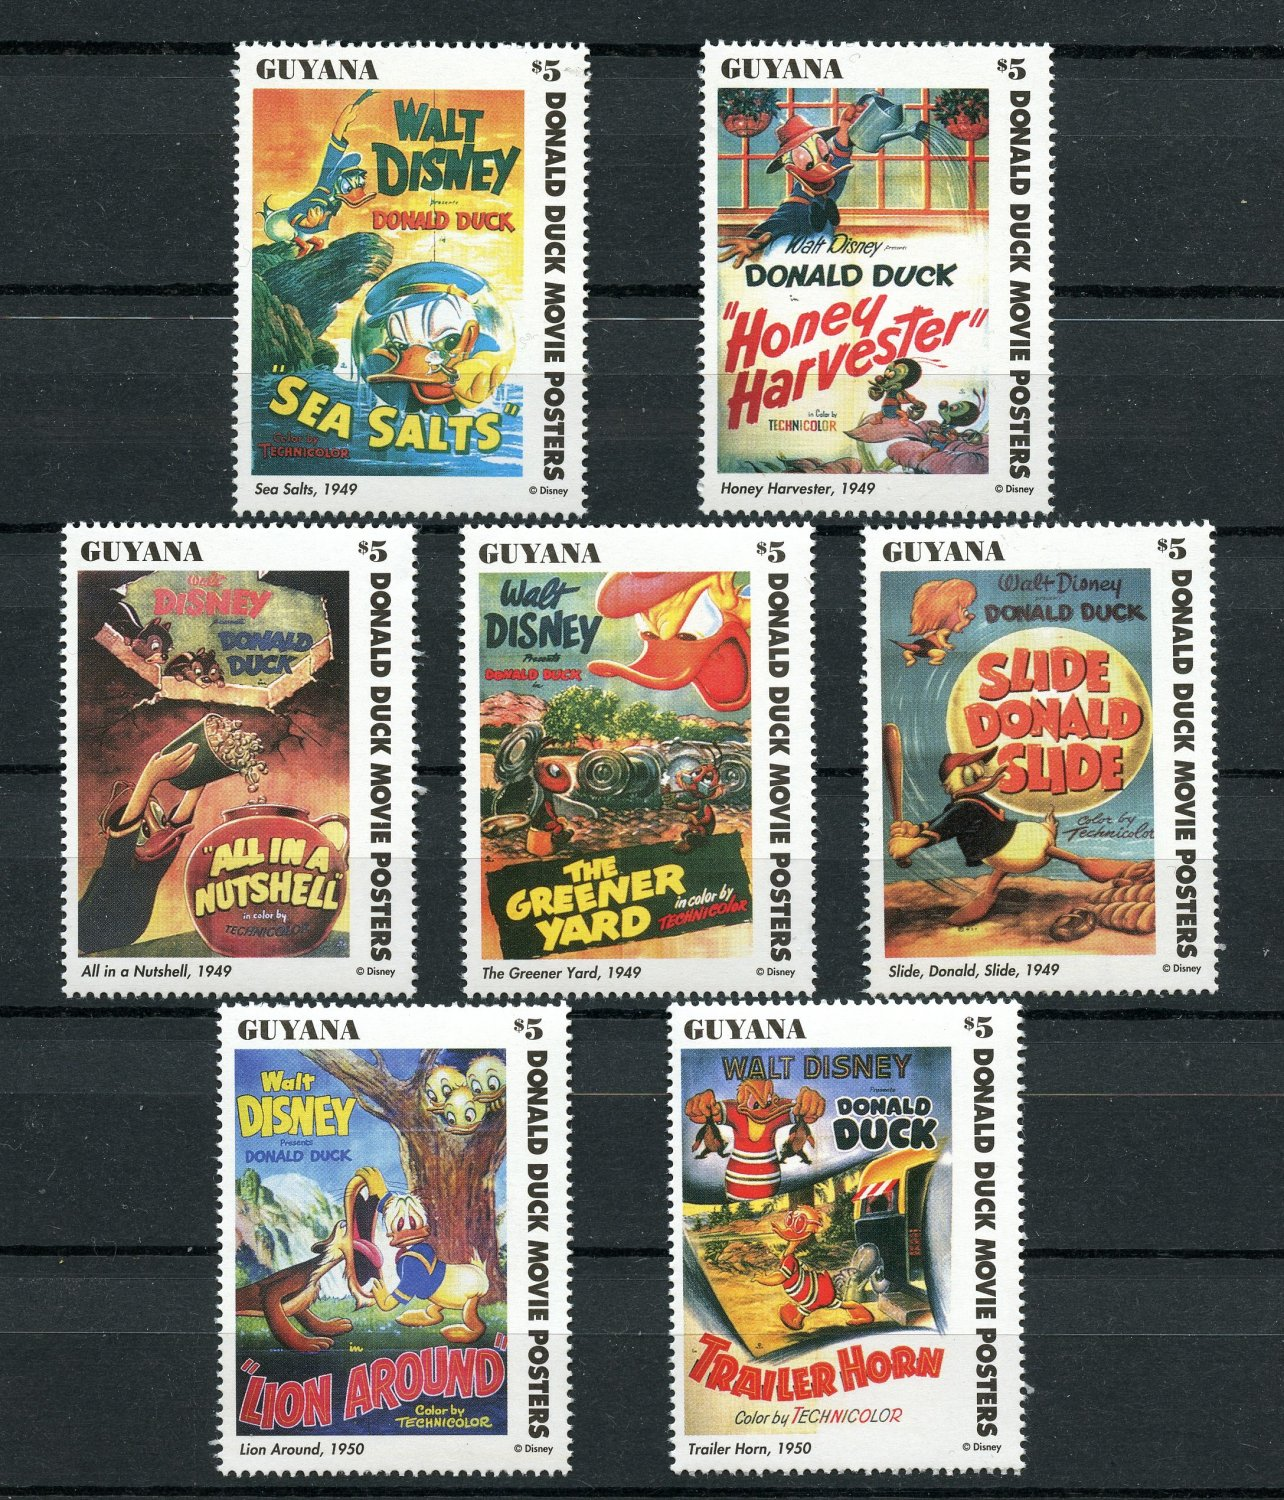 Donald Duck Movie Posters Disney 7 mnh stamps 1996 Guyana set 4